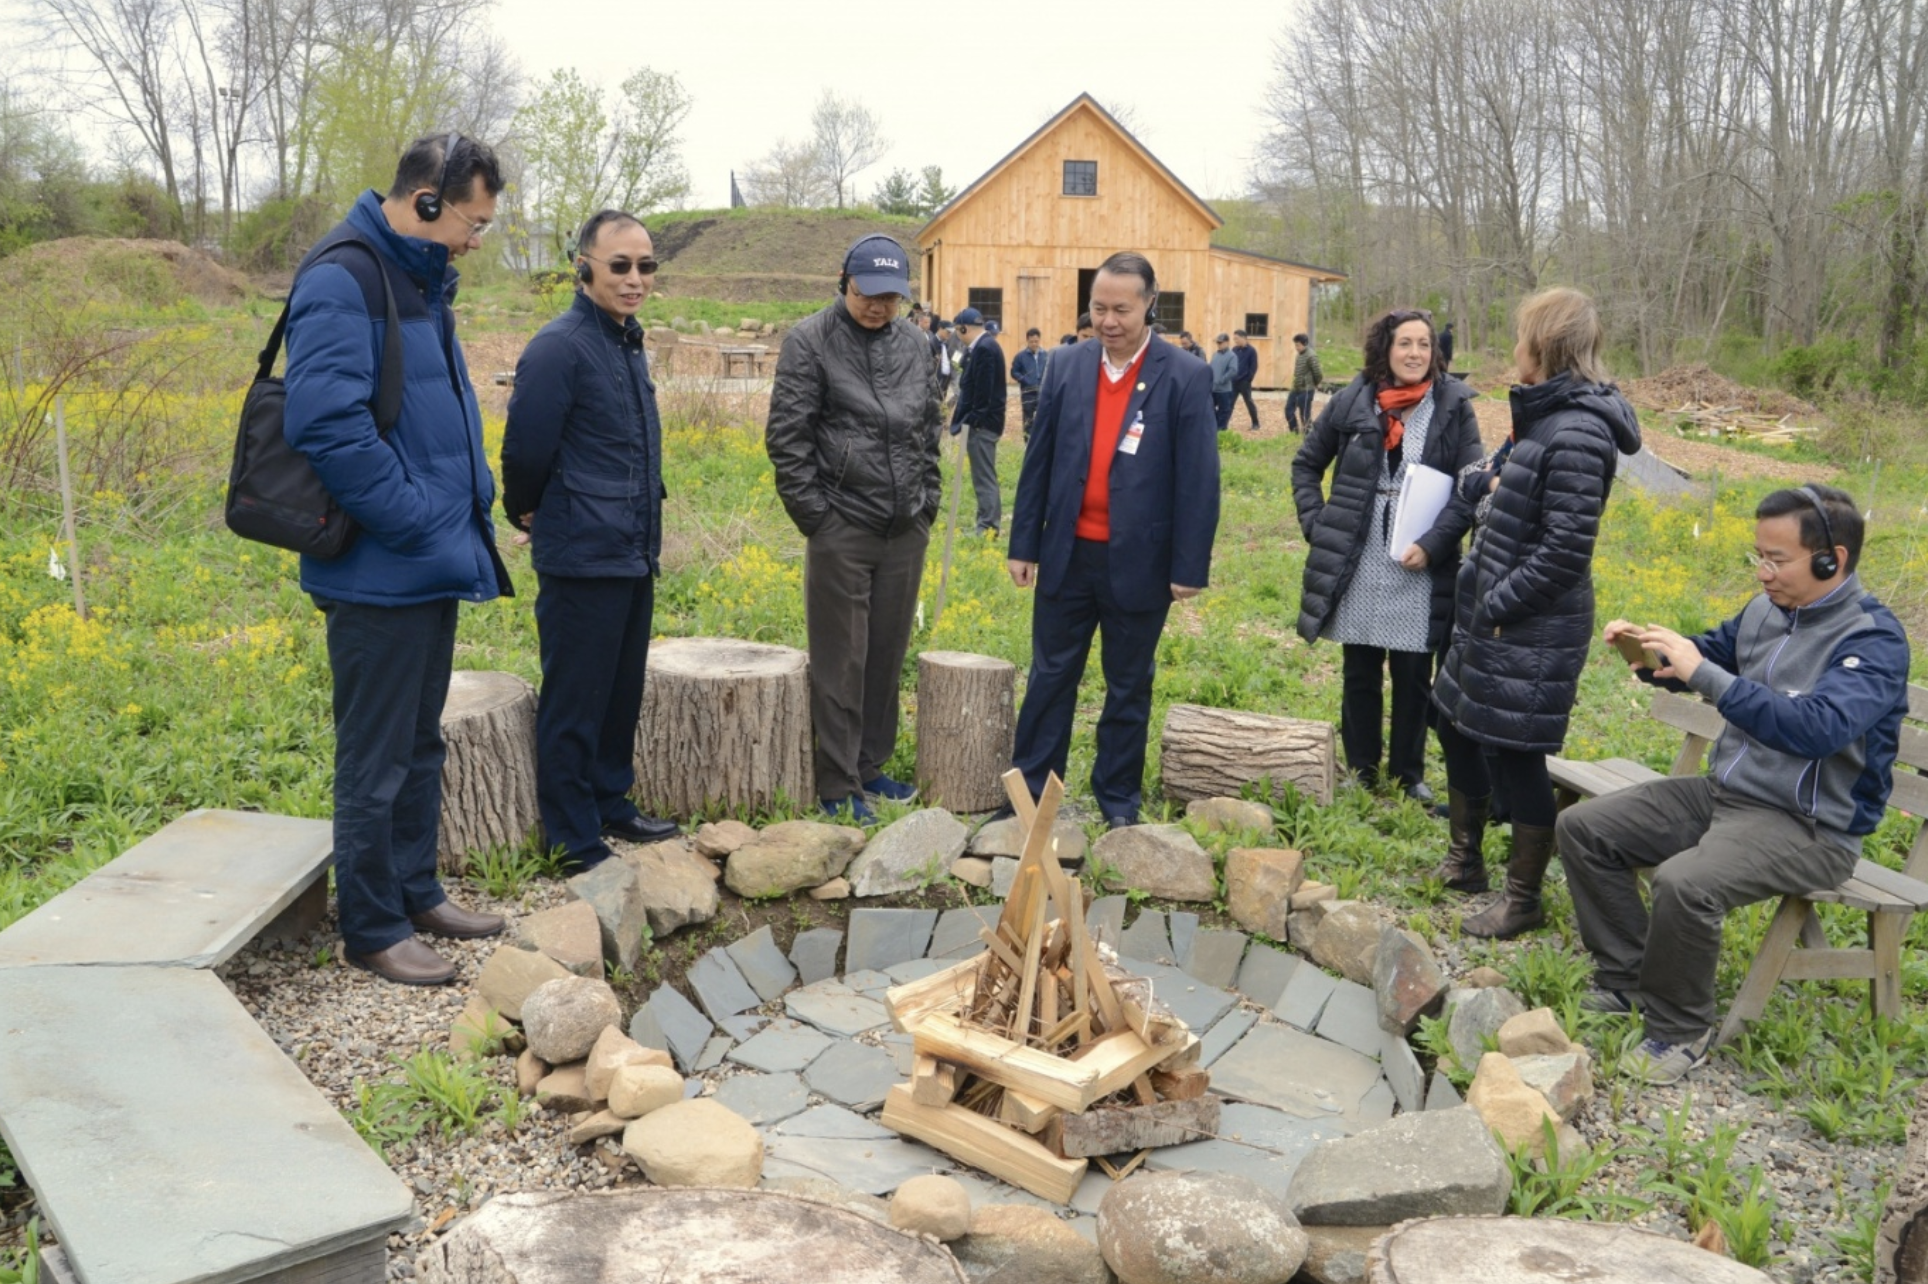 China - Yale Healthy Cities Leadership Program at West Campus - A delegation of twenty-five mayors and provincial leaders visited West Campus Thursday as part of the week-long Yale-China Healthy Cities executive leadership program…